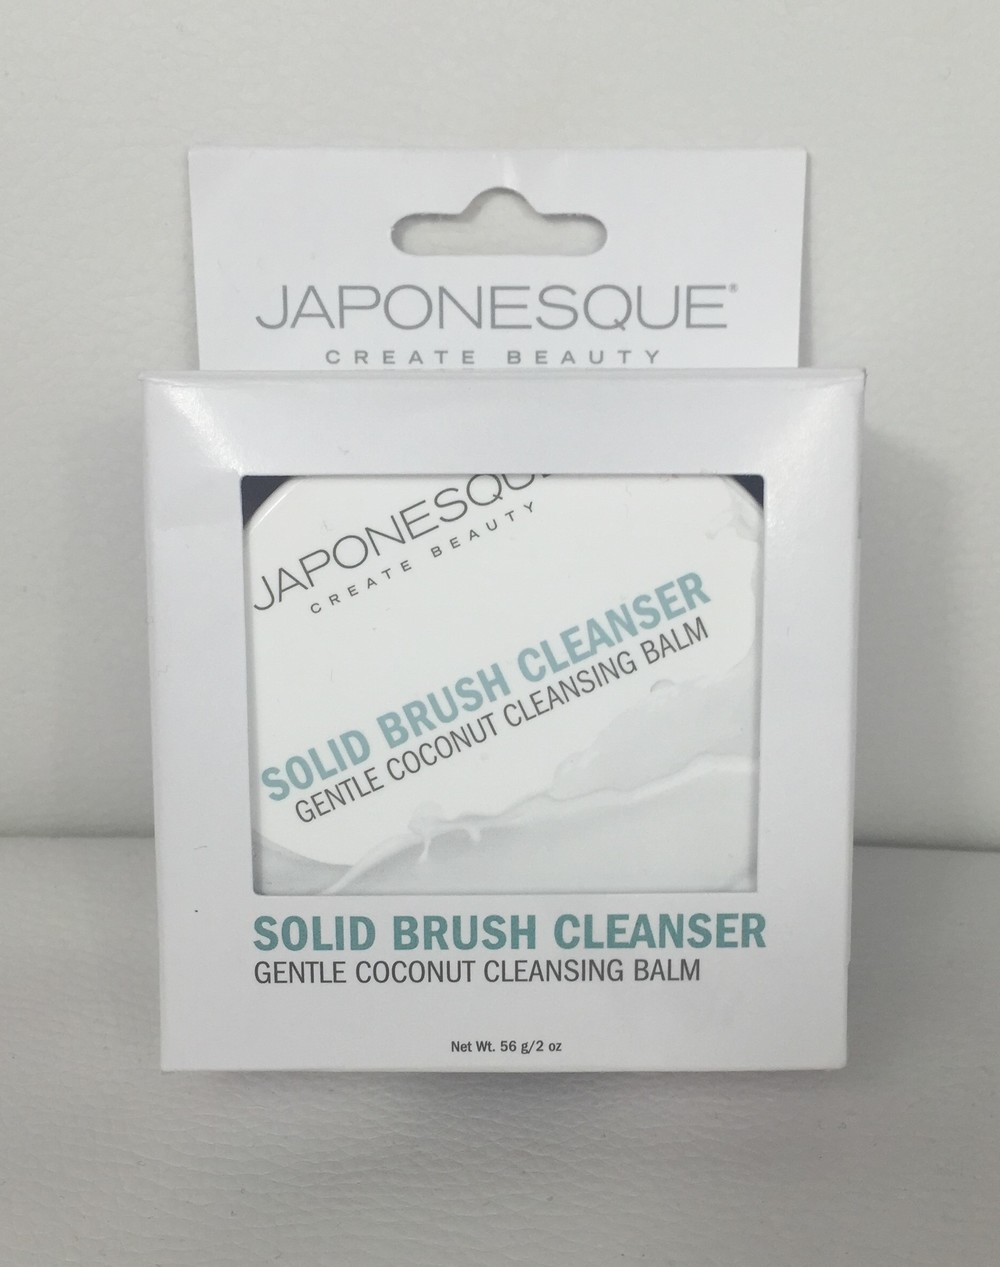 Japonesque Solid Brush Cleanser - Gentle Coconut Cleansing Balm